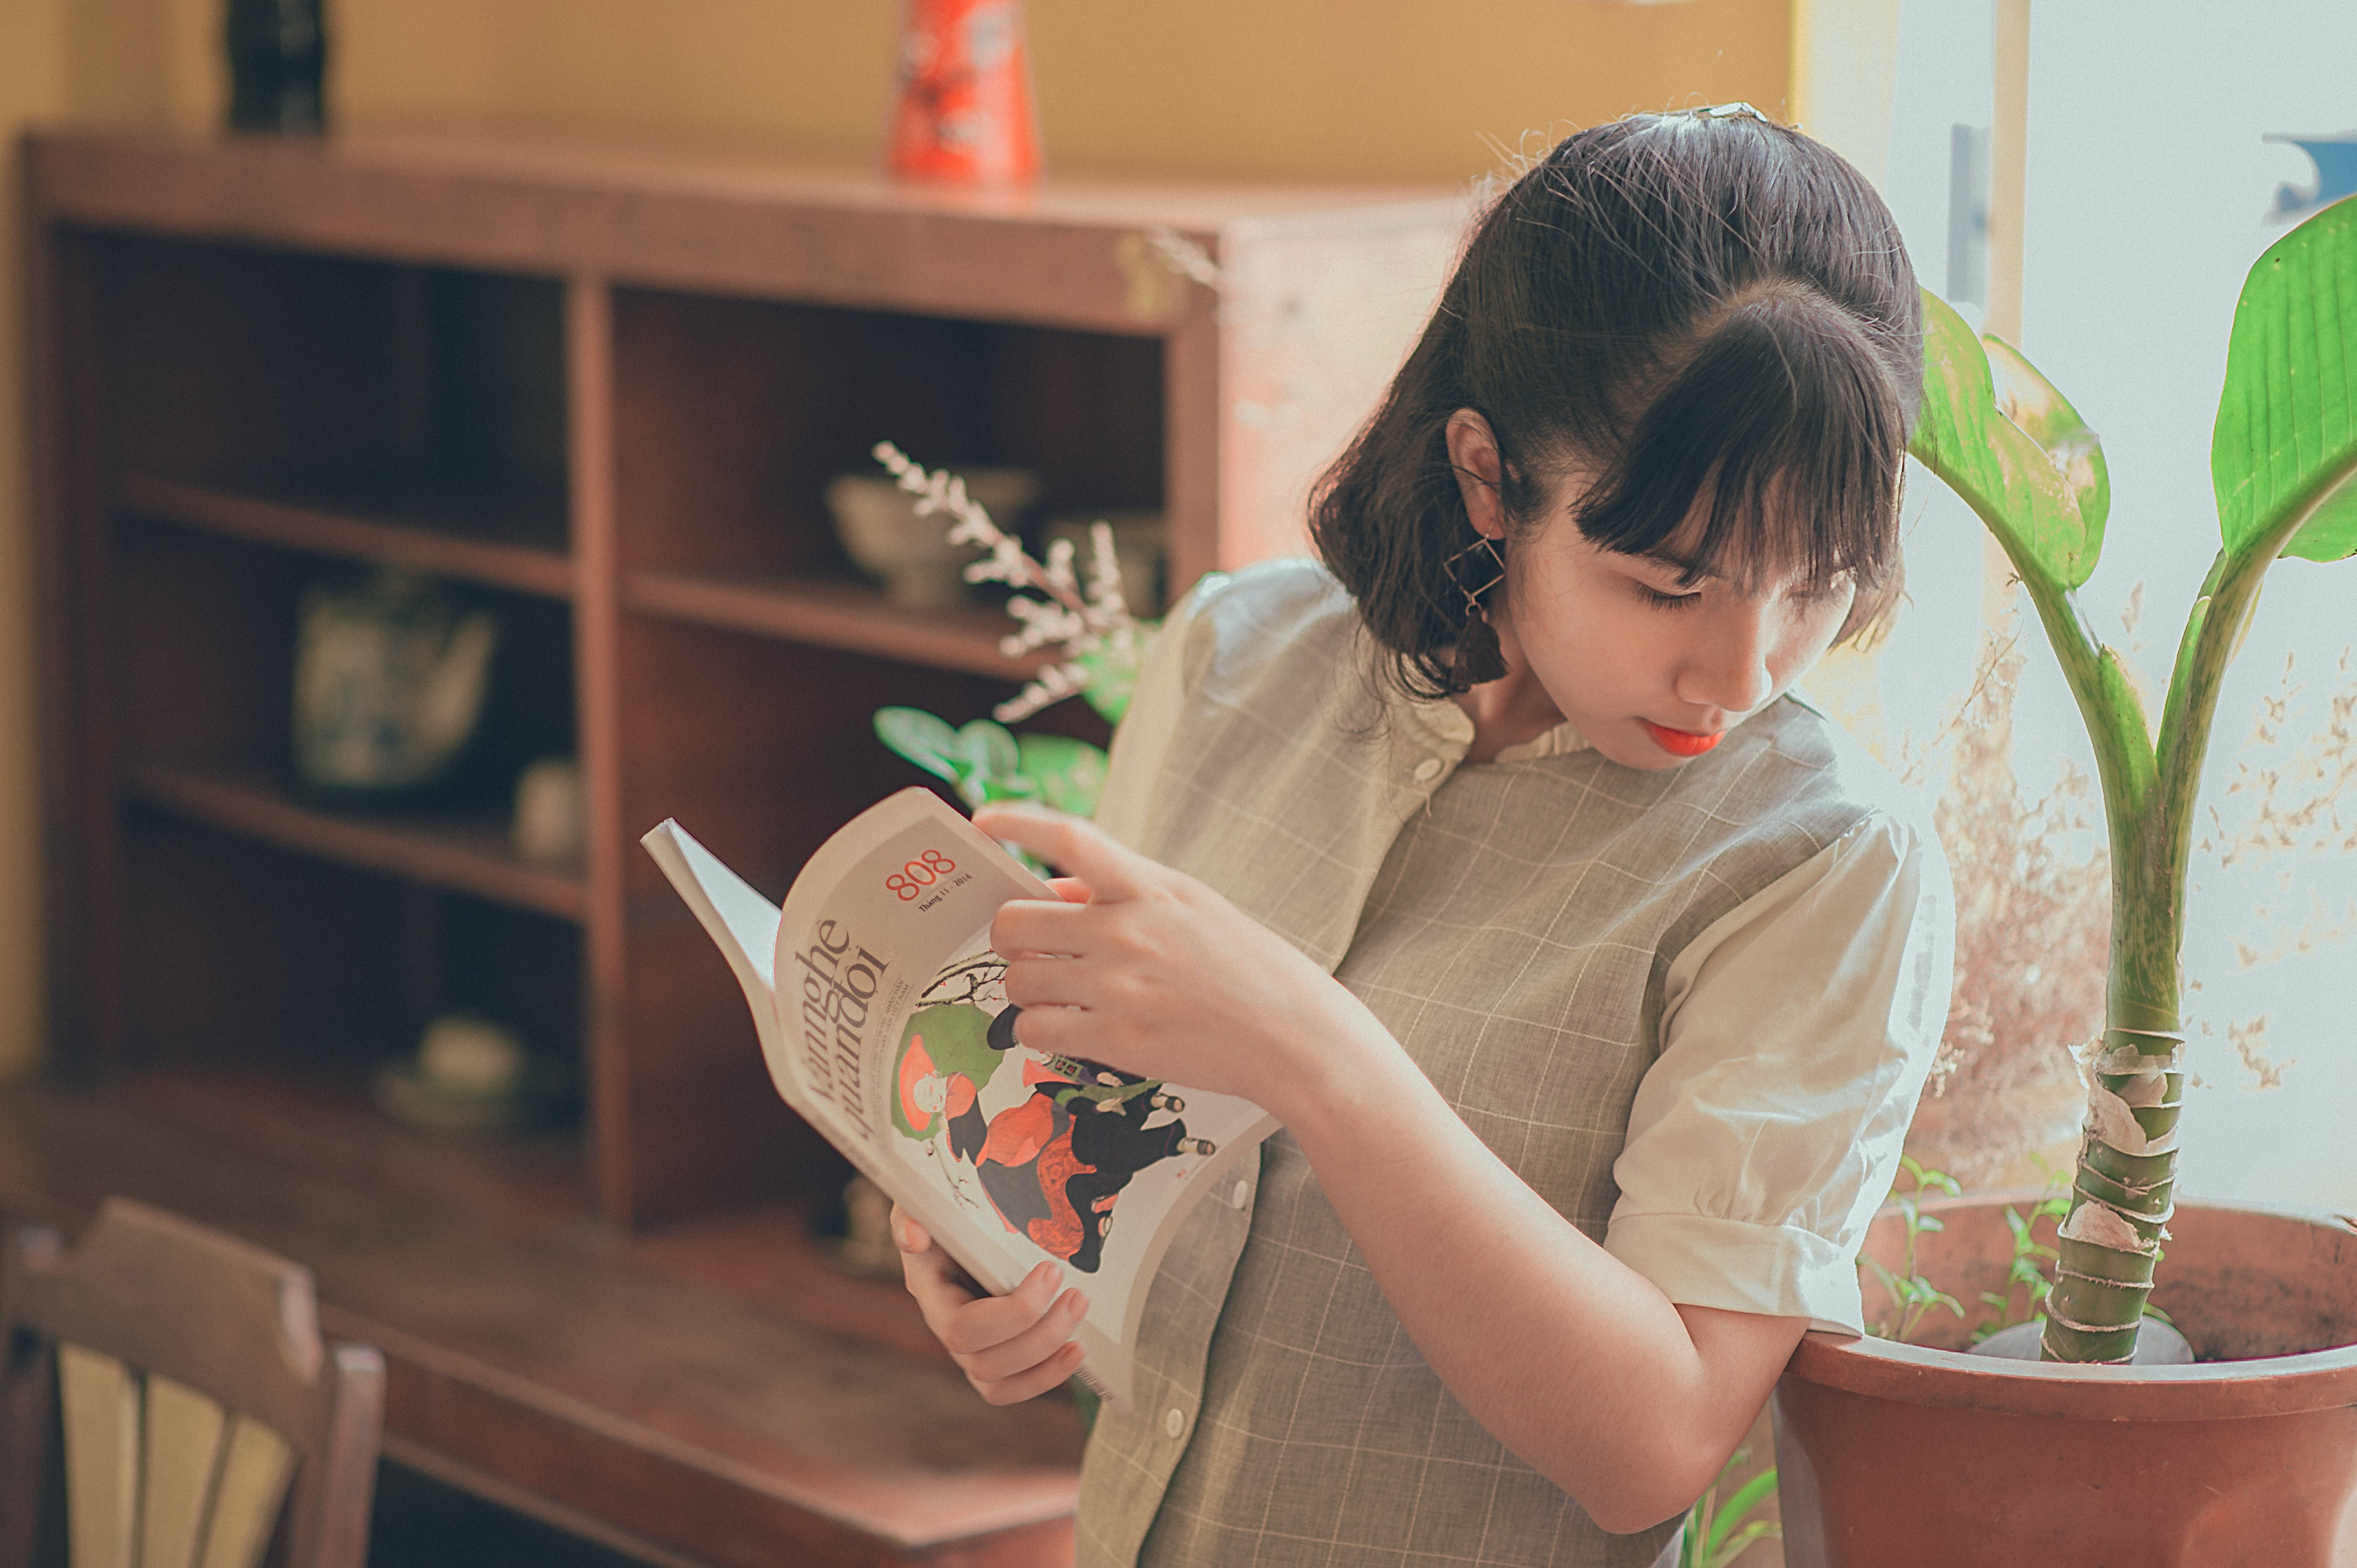 Woman in Grey Button-up Short-sleeved Top Holding Book